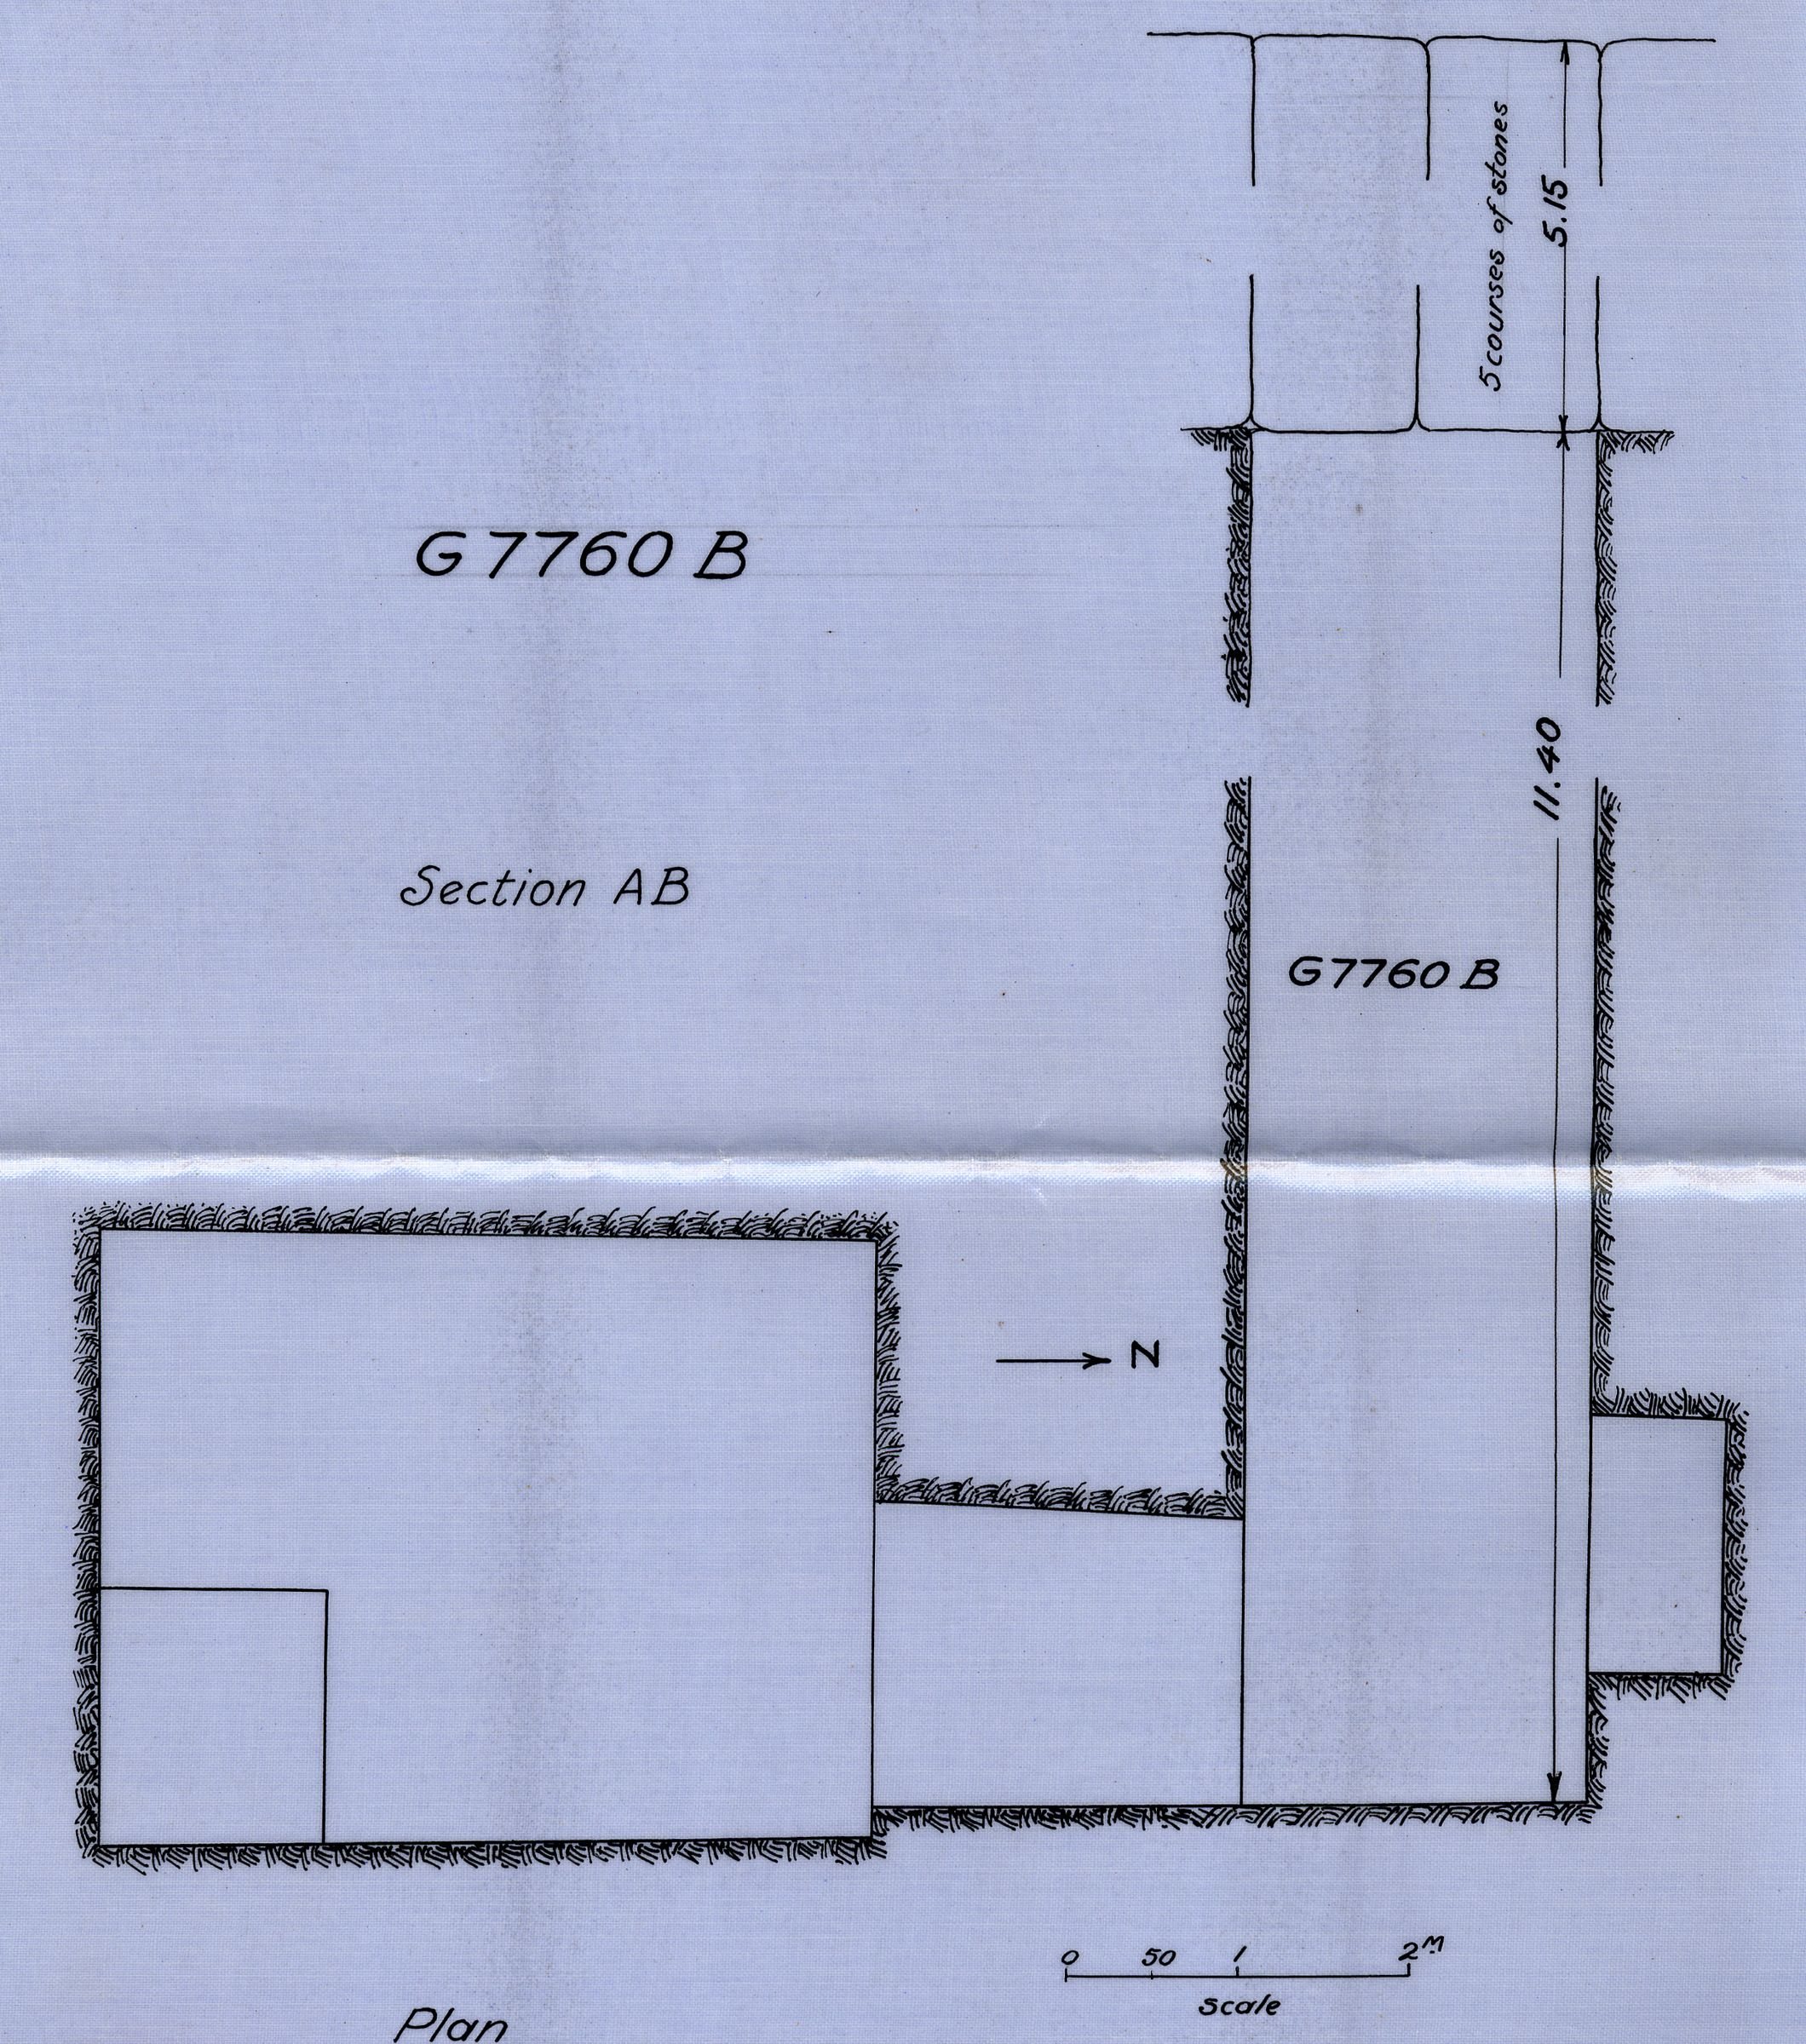 Maps and plans: G 7760, Shaft B